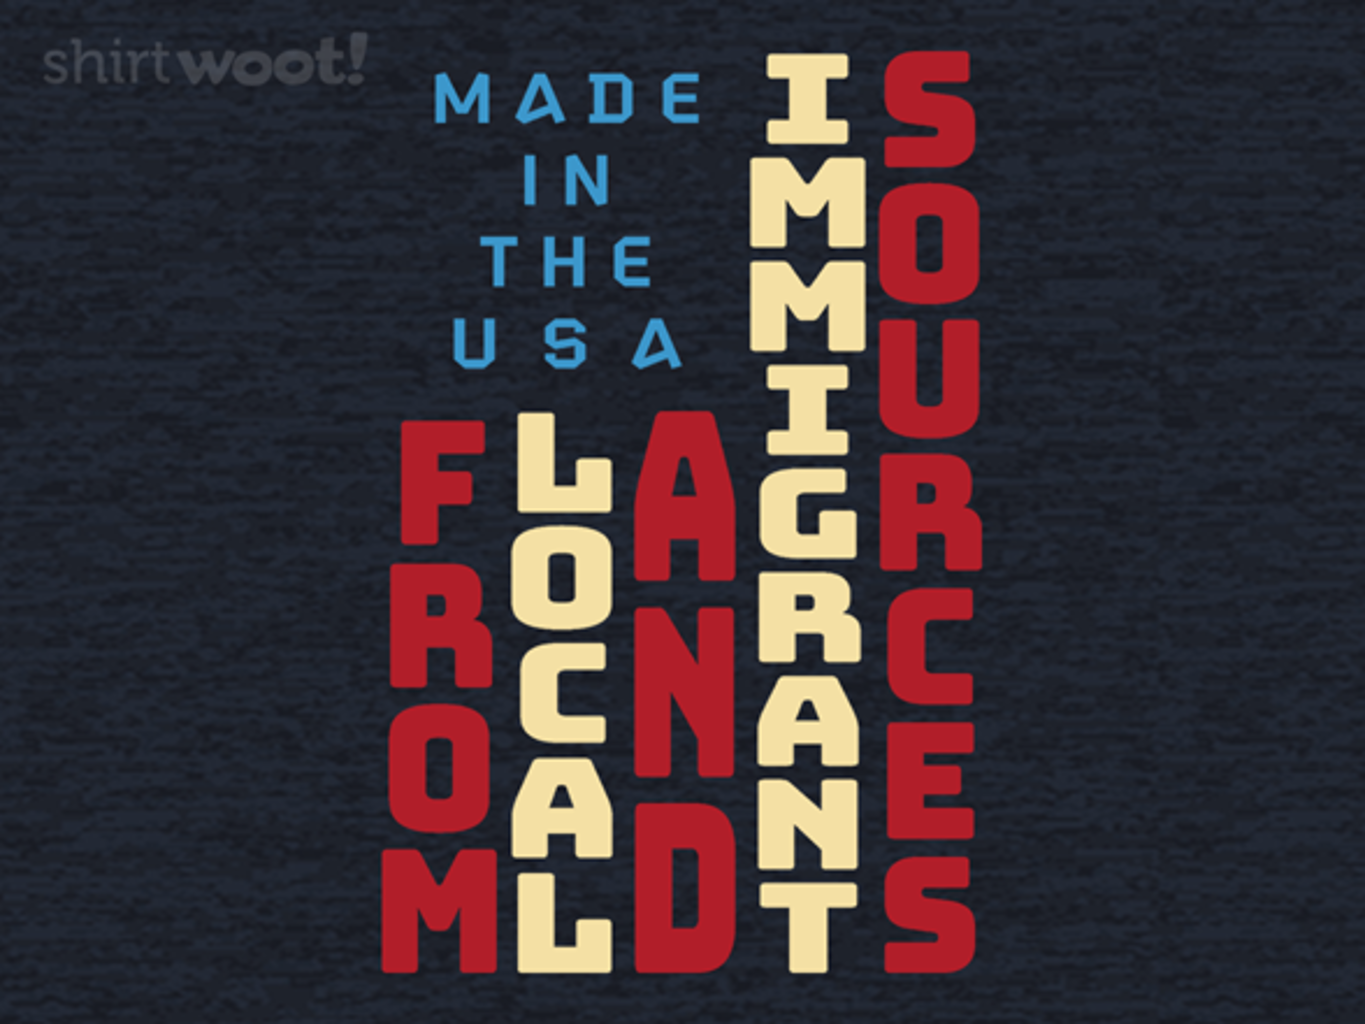 Woot!: Made in the USA